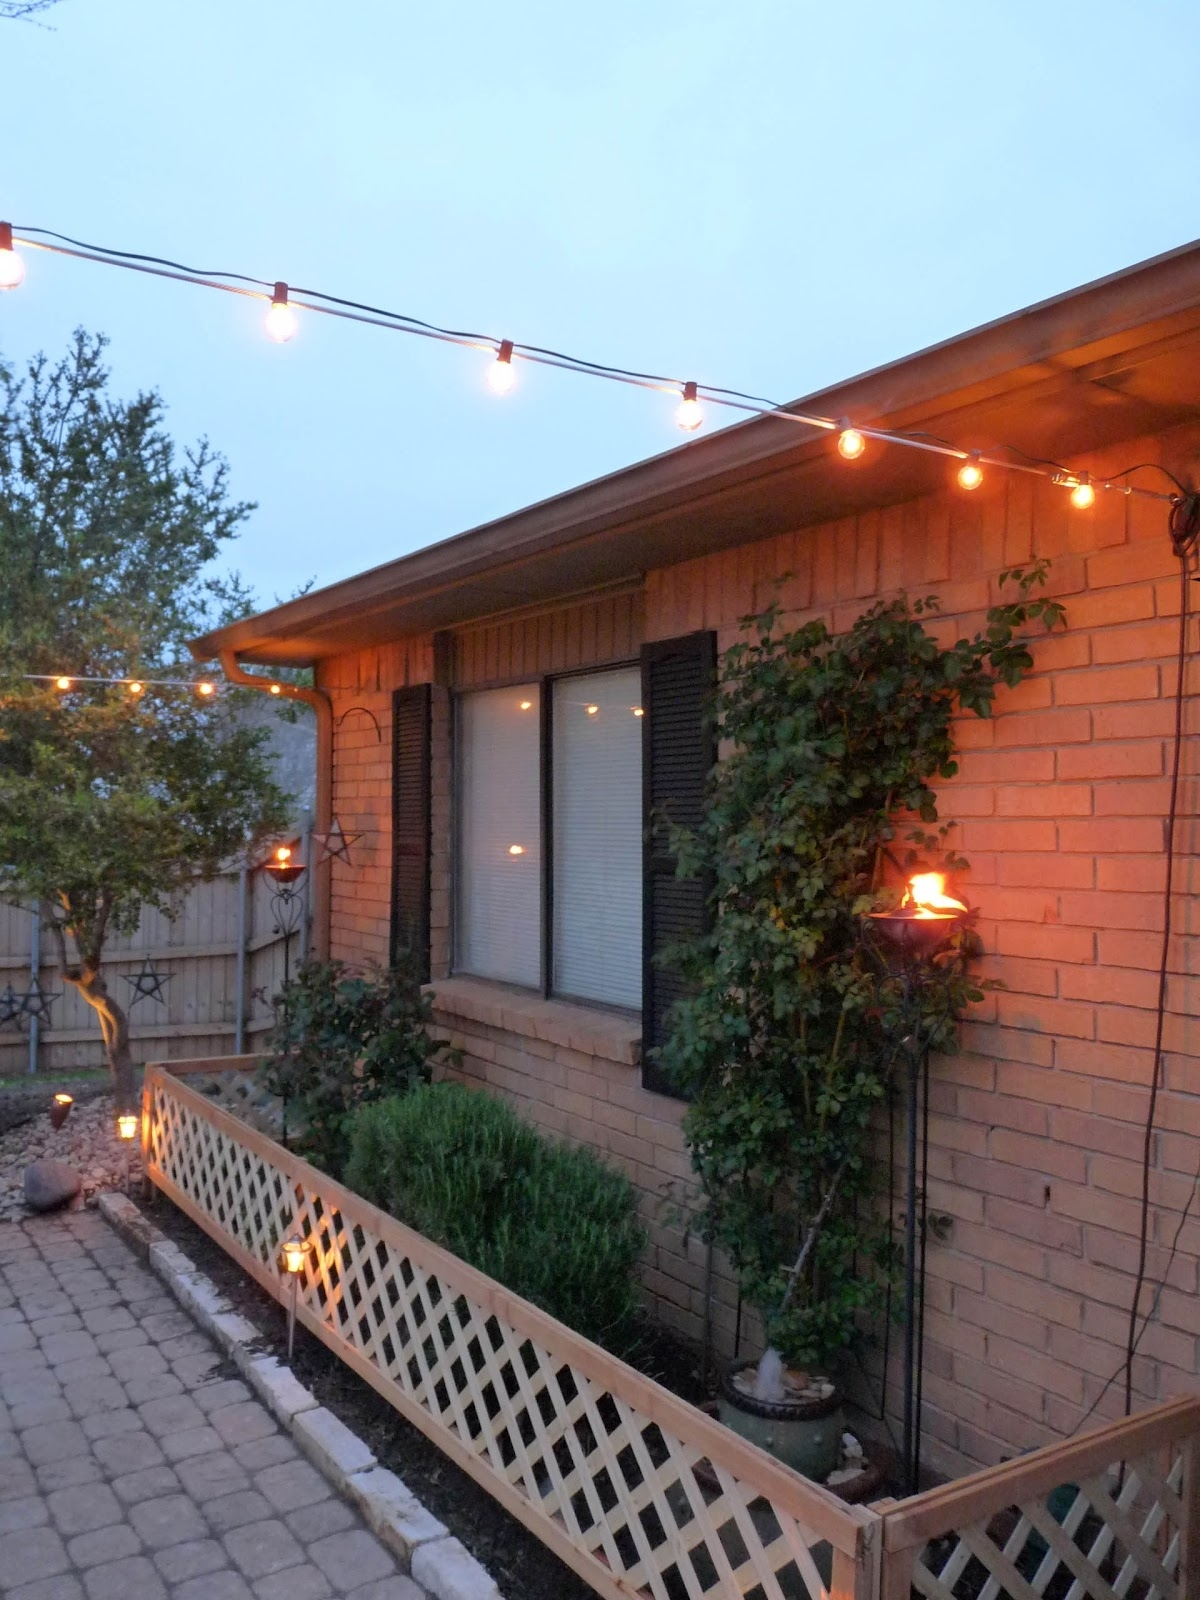 Hanging Outdoor Lights On Wire Throughout Best And Newest The Happy Homebodies: Diy: Stringing Patio Cafe Lights (View 6 of 20)